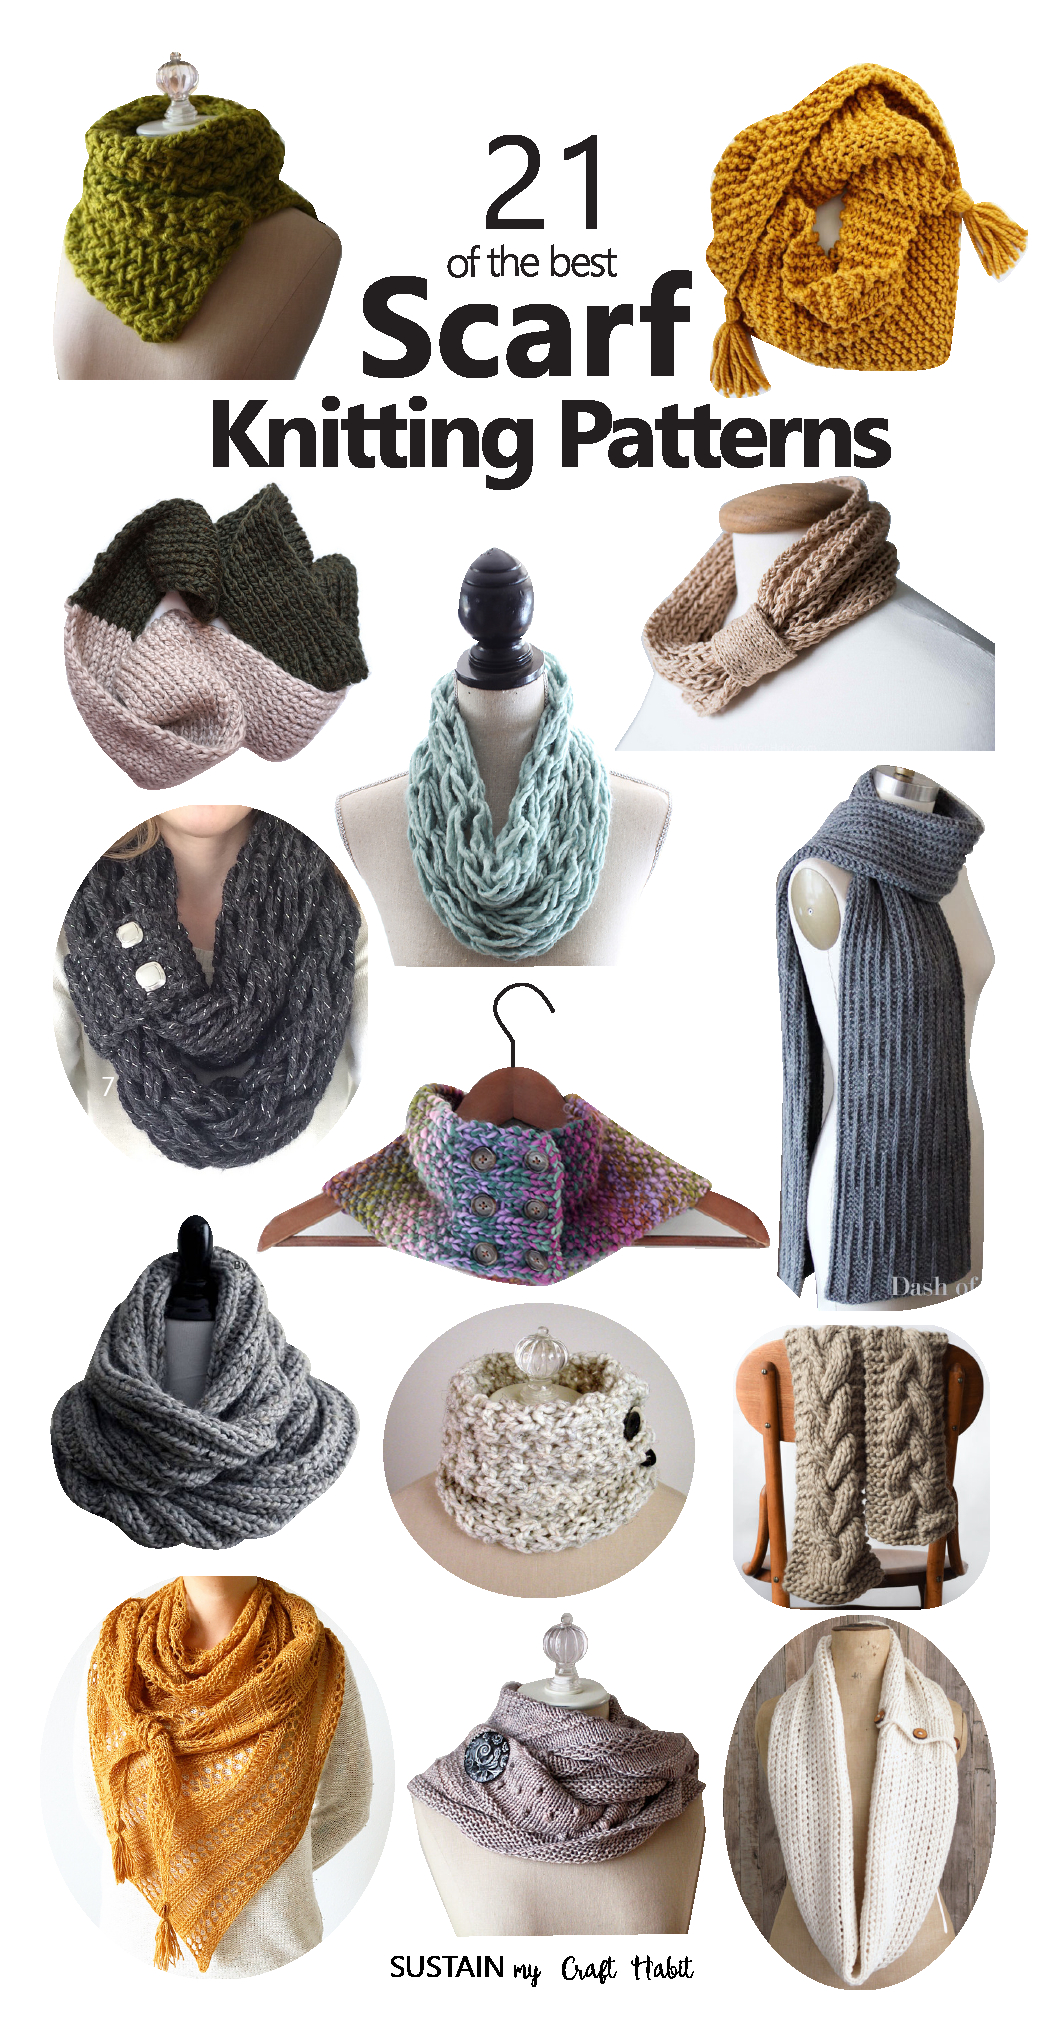 Open Knit Scarf Pattern 21 Of The Best Scarf Knitting Patterns Sustain My Craft Habit